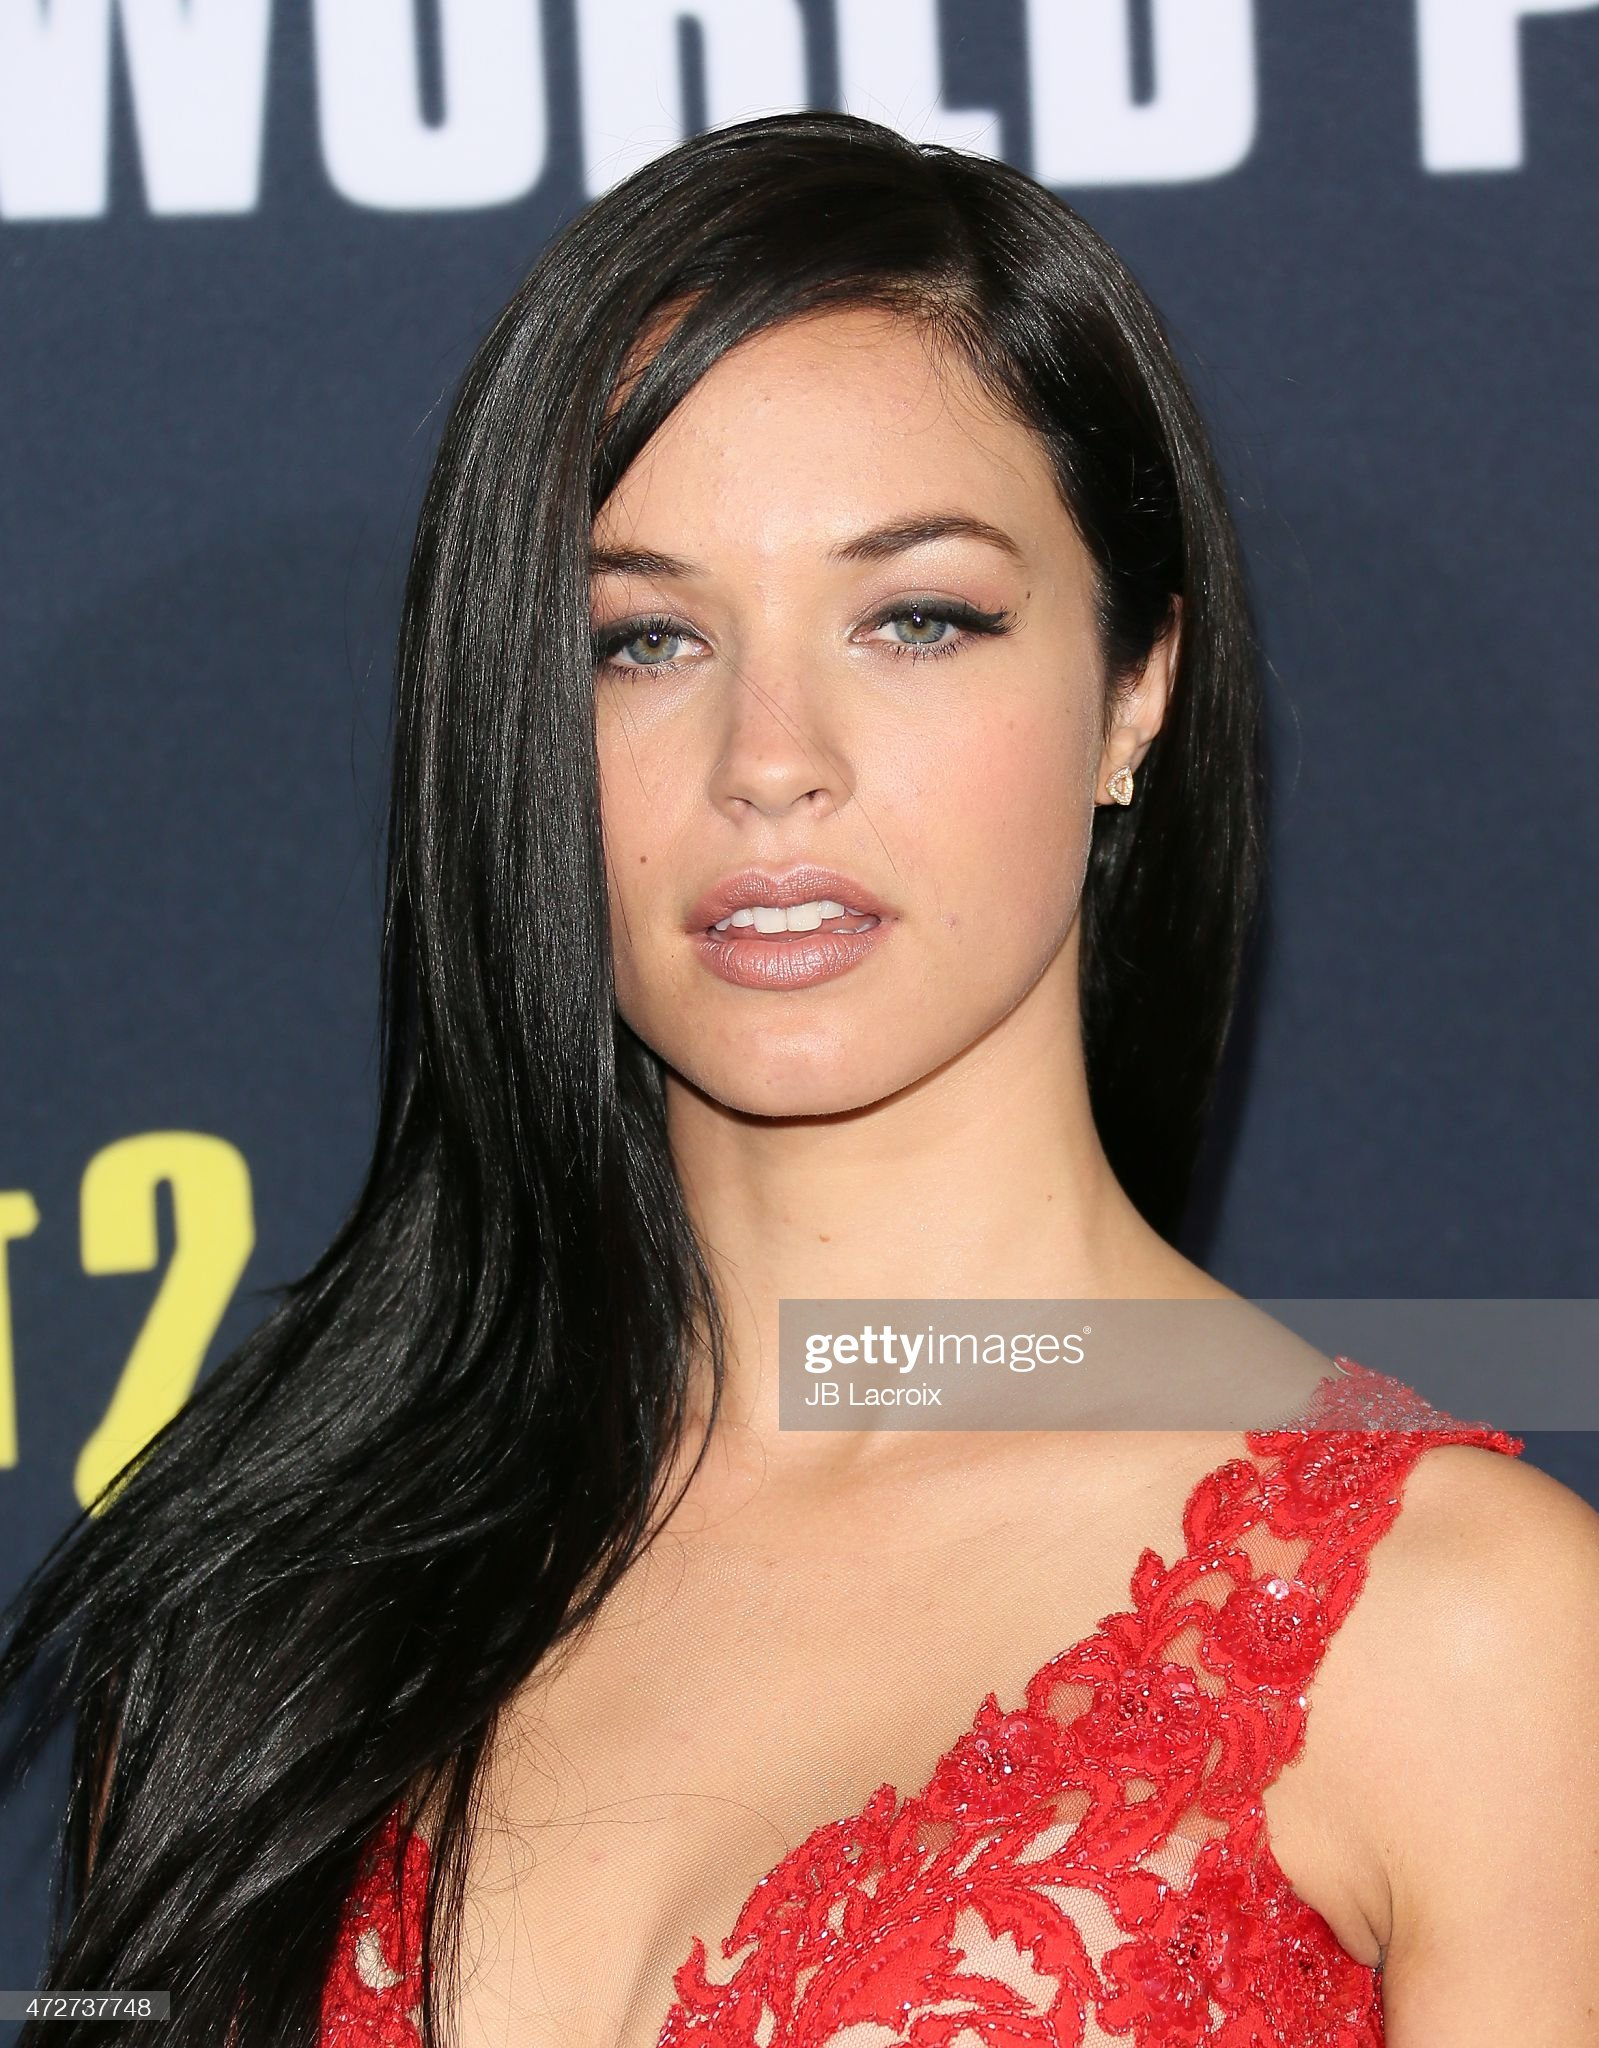 Top 80 Famosas Foroalturas - Página 2 Alexis-knapp-attends-the-pitch-perfect-2-los-angeles-premiere-held-at-picture-id472737748?s=2048x2048